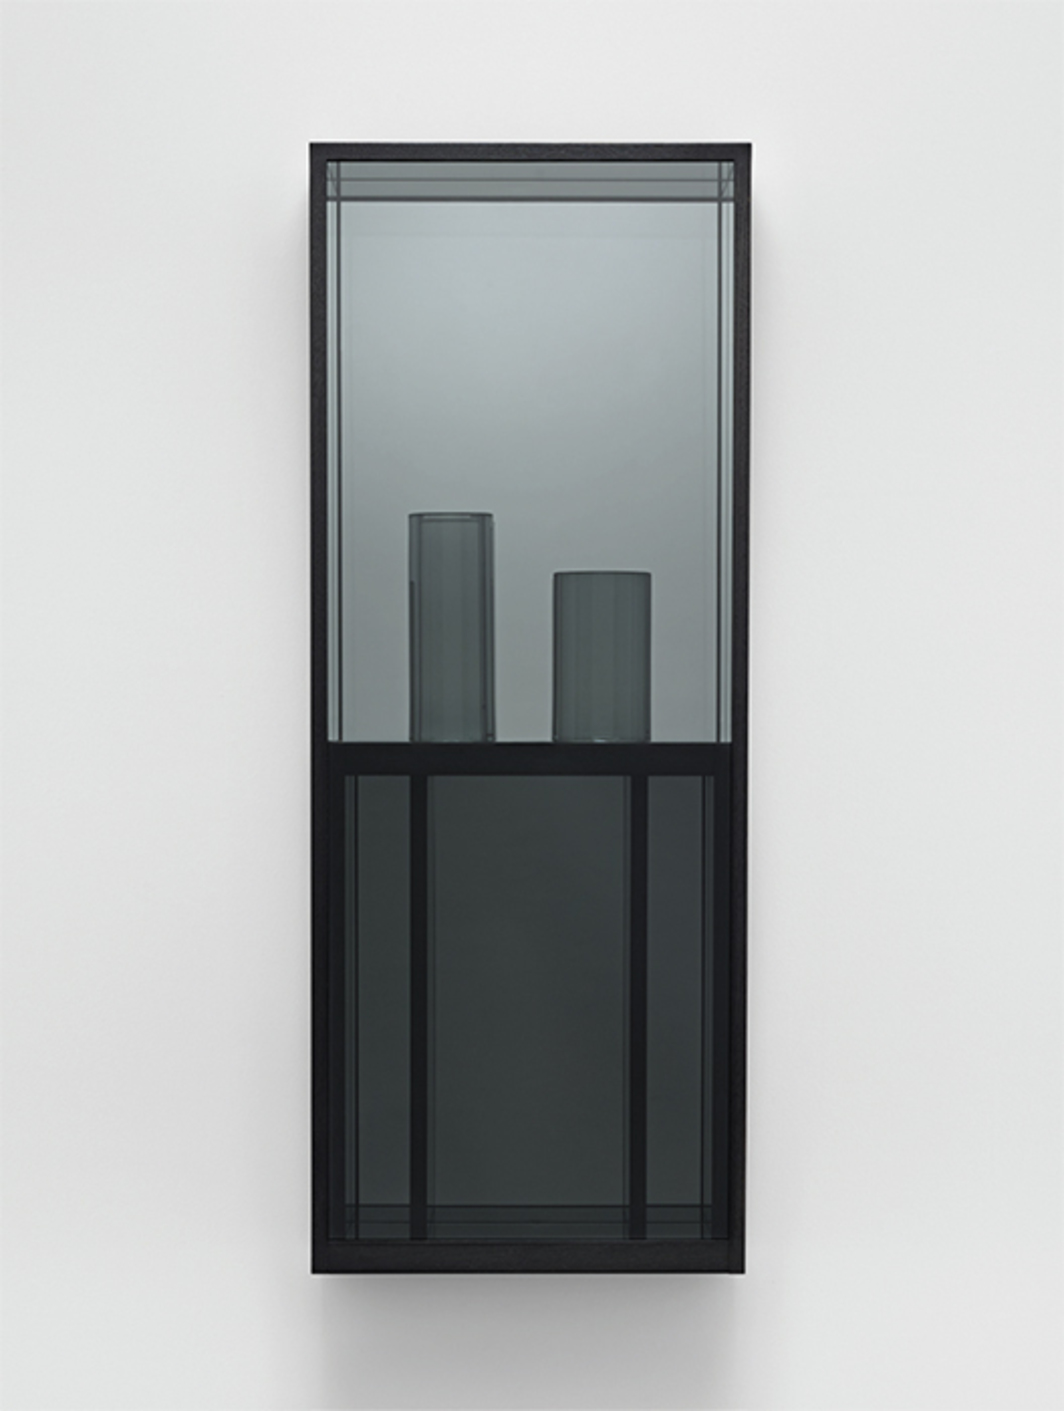 "Josiah McElheny, Window Painting I, 2015, hand-formed cut and polished gray glass, low-iron mirror, gray architectural sheet glass, oak, sumi ink, 50 1/2 × 19 1/2 × 7 1/2""."